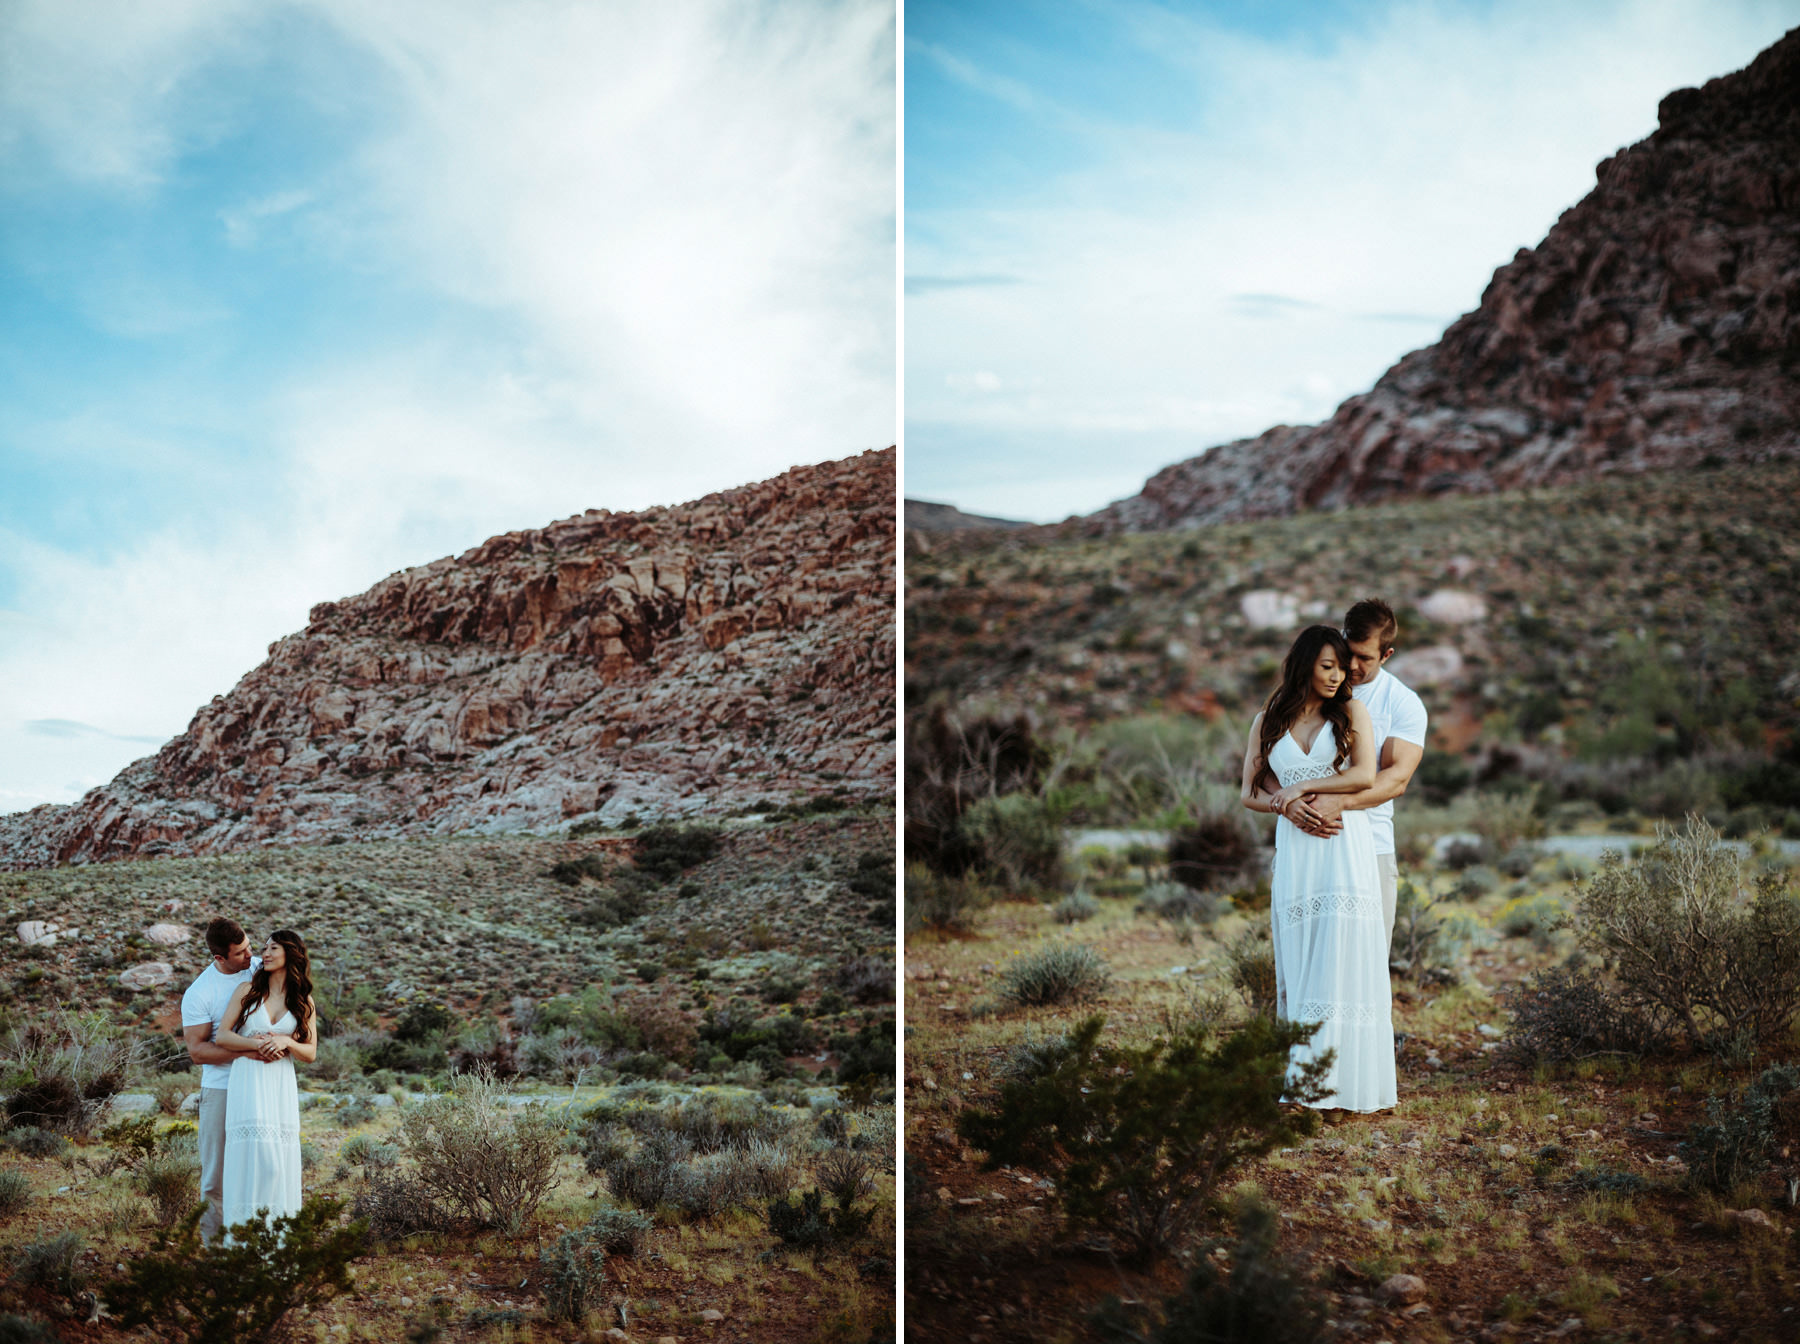 179_Red Rock Canyon Desert Engagement Session Las Vegas, Nevada_Kindling Wedding Photography.JPG